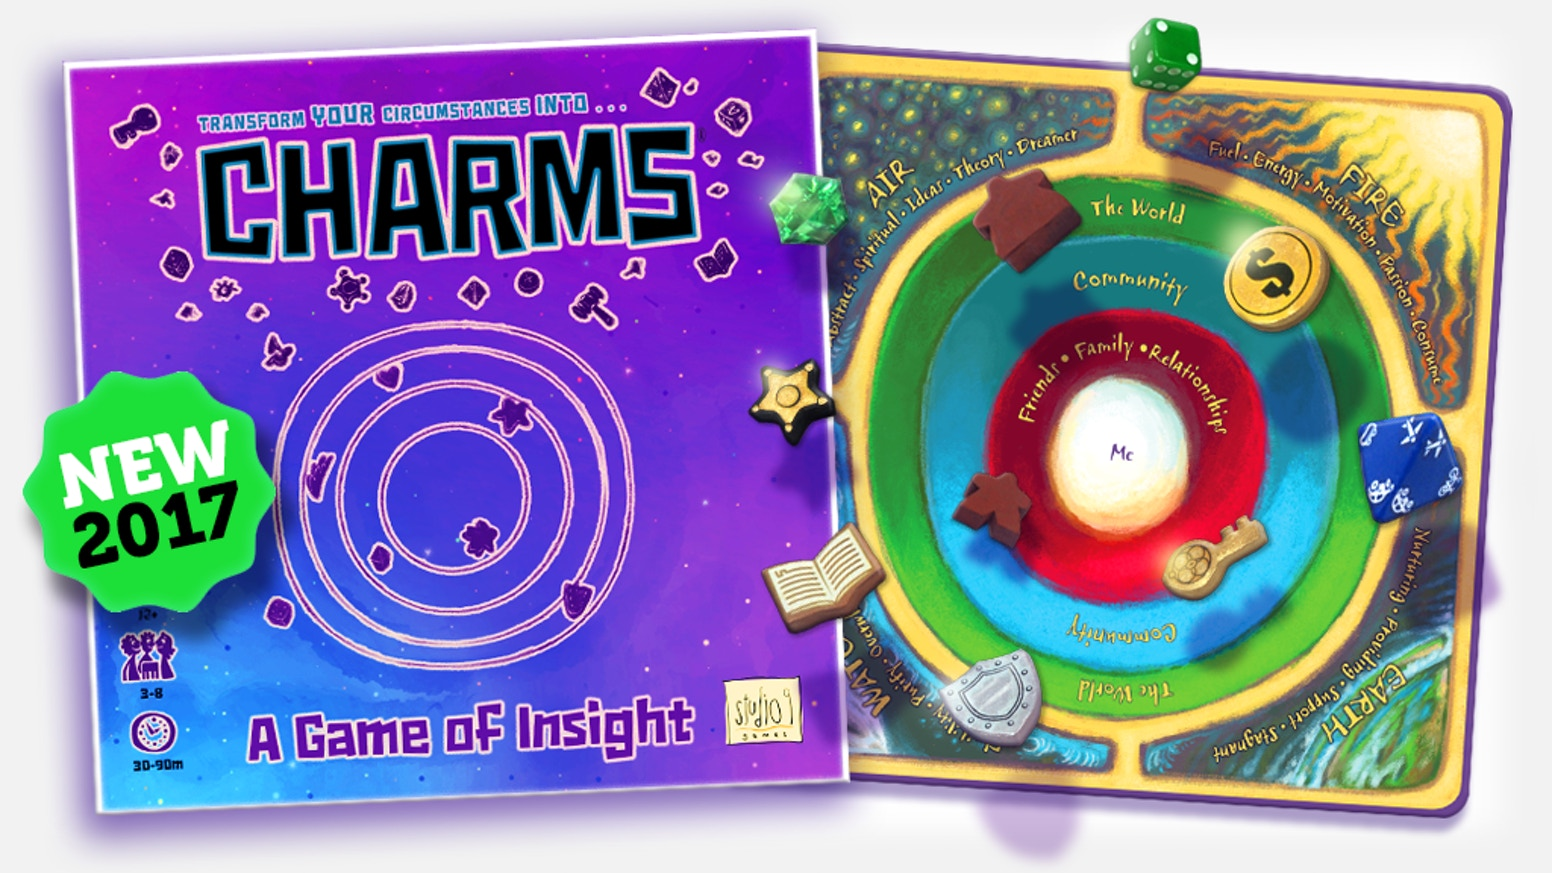 Champion your year (and more) with amazing insights waiting to be discovered in this fun party game for a charmed life!